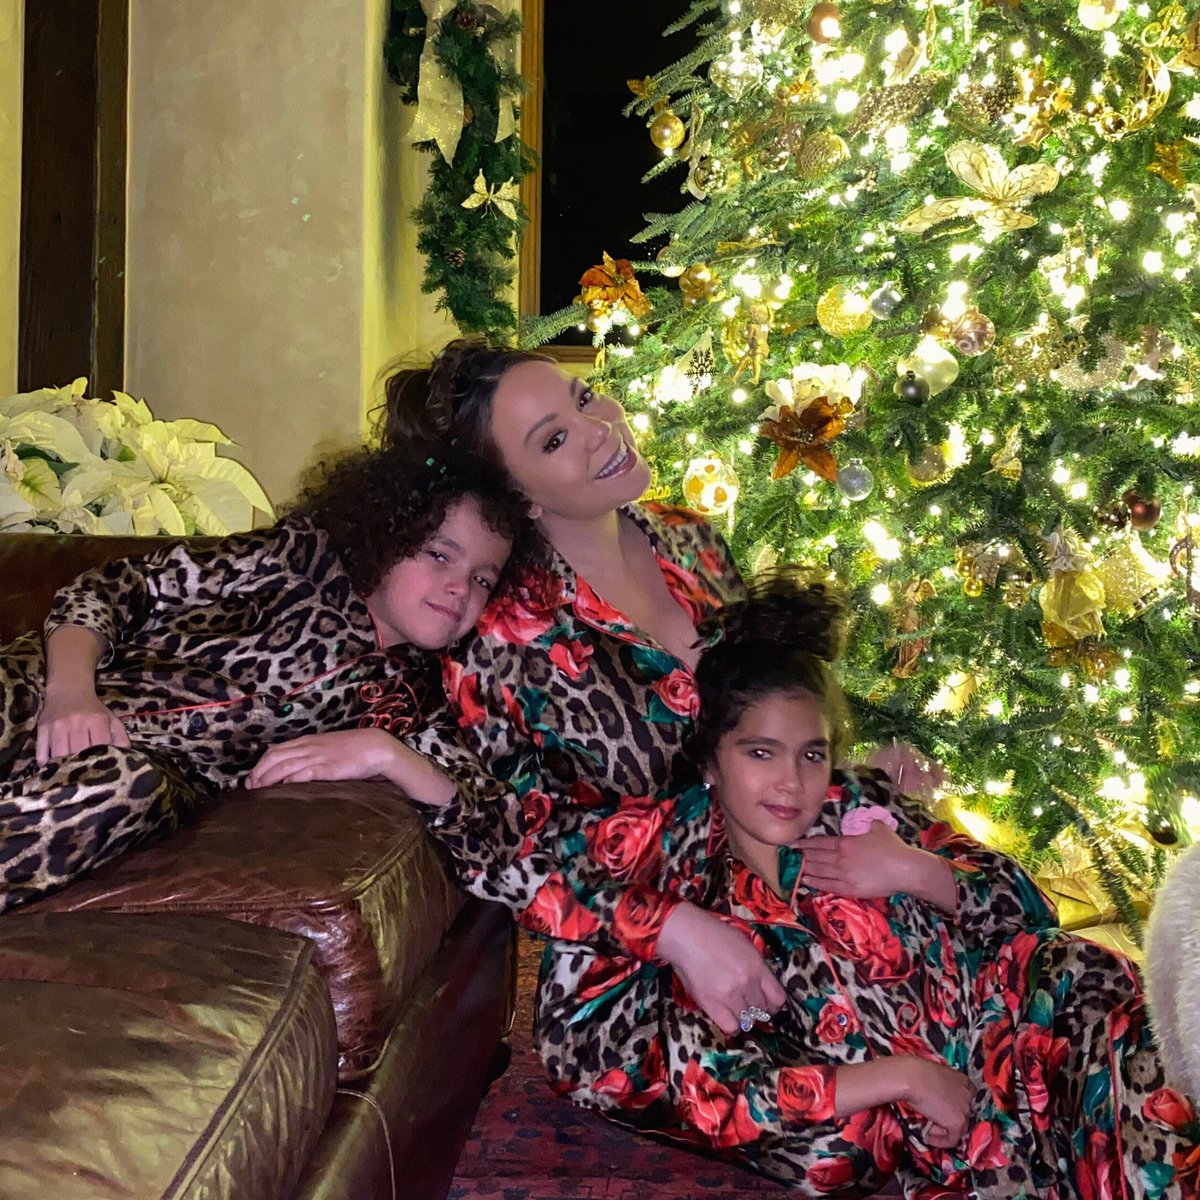 """Sitting w/ Dem Kids by the tree, getting ready to read """"A Snow Globe of Joy"""" from my memoir together ♥️😇🎄🌠 Thank you so much to everyone who supported #TheMeaningofMariahCarey My little girl self is grateful 😢 Love + appreciate you so much! Merry Christmas Eve to All! 🐑🎹❄️"""